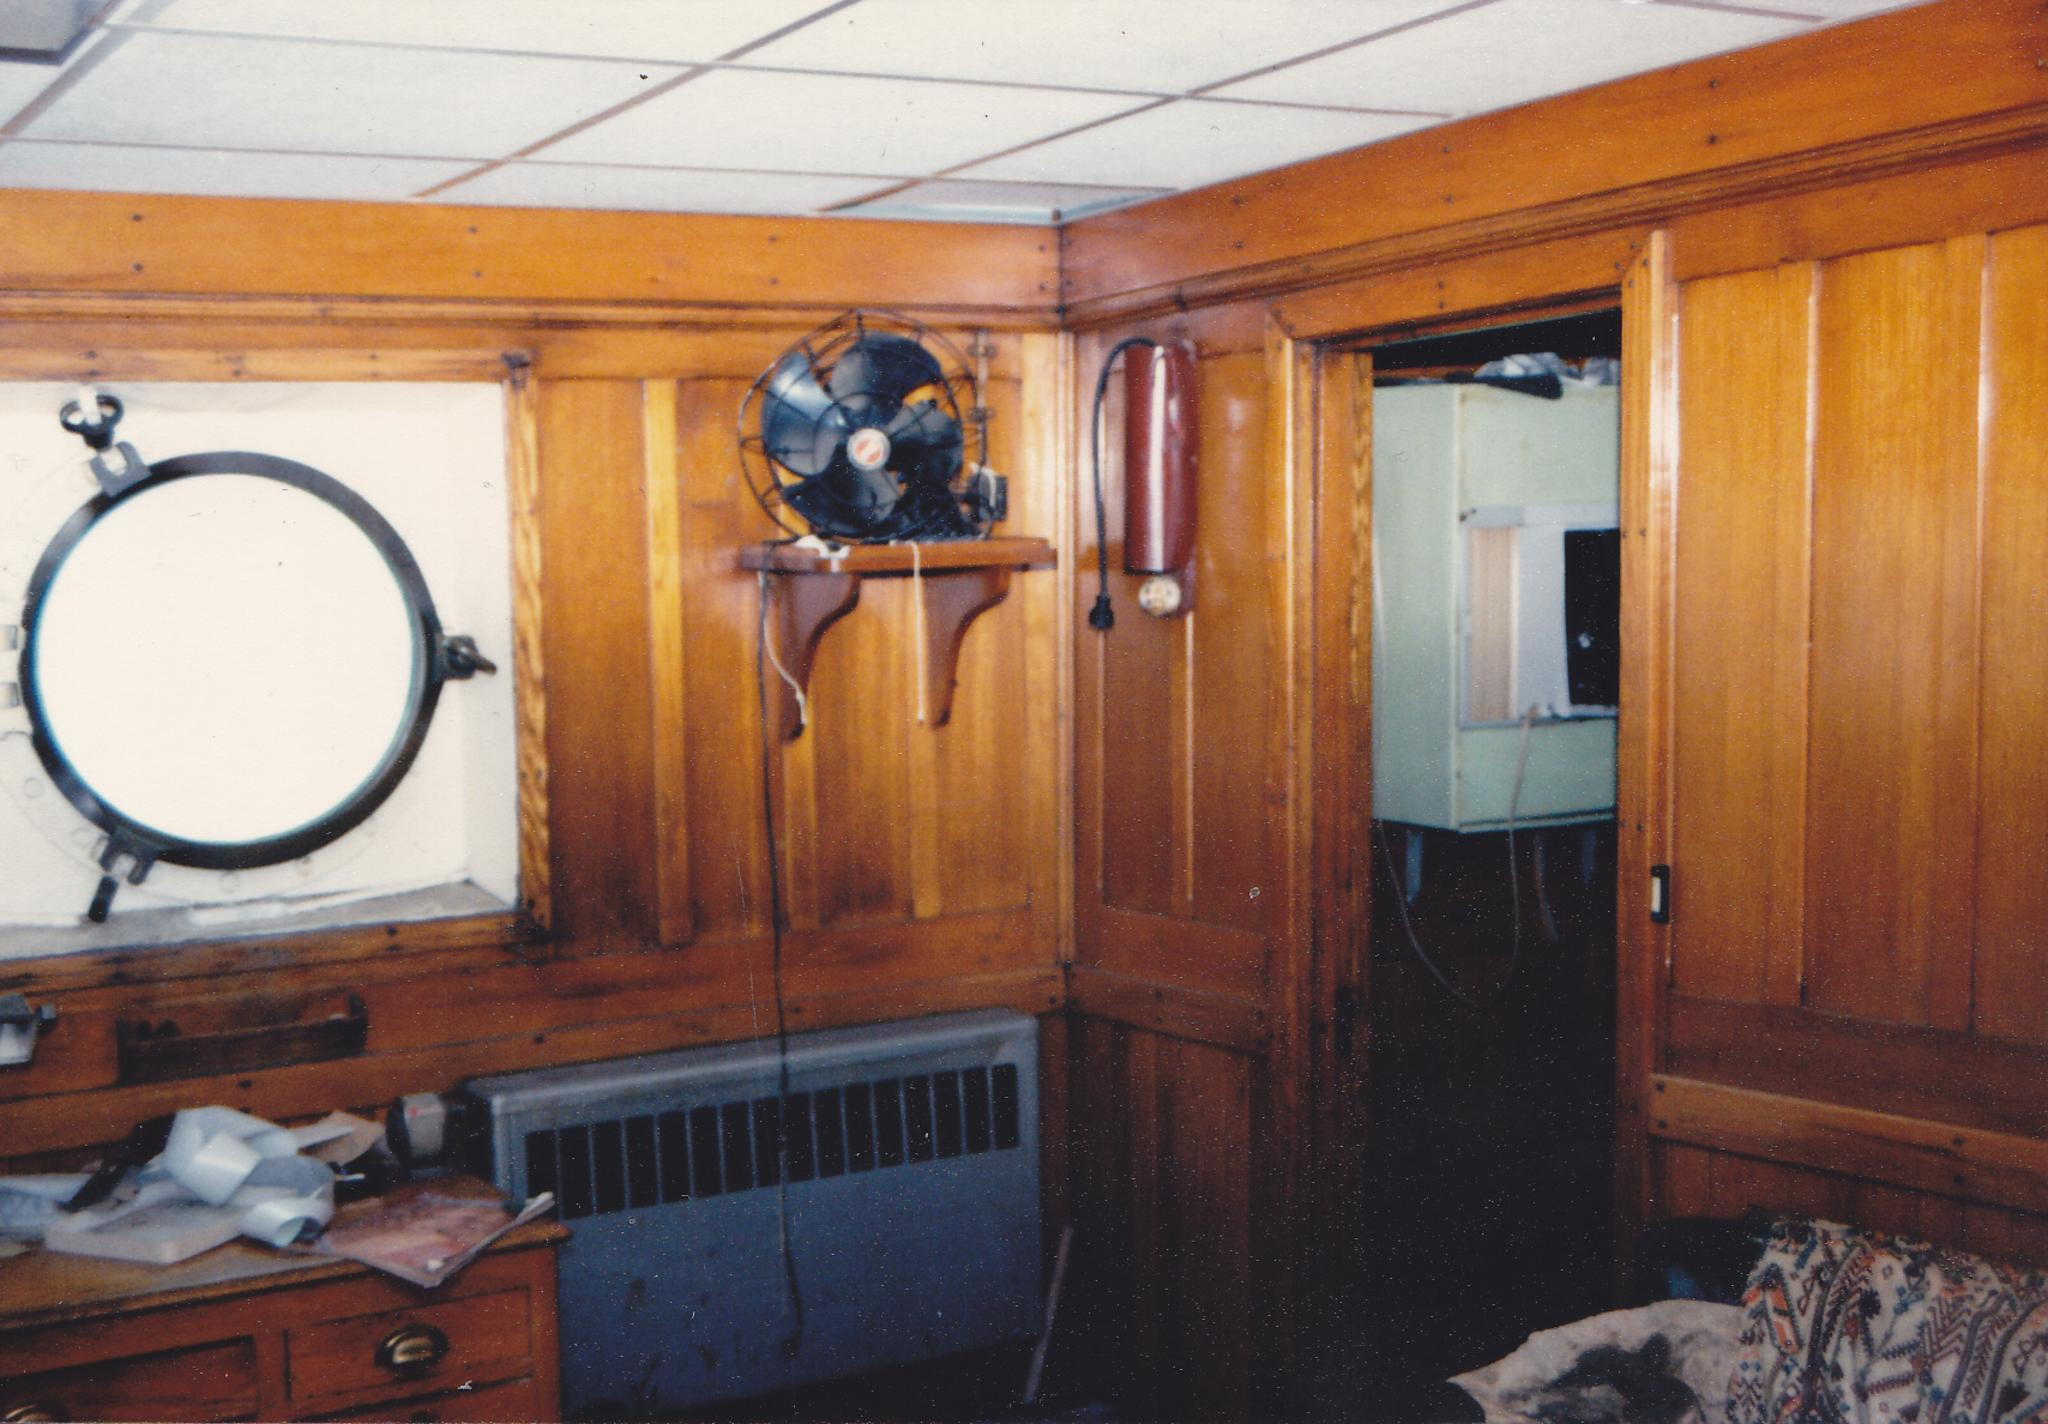 MORE CAPTAINS QUARTERS by M. Wryter